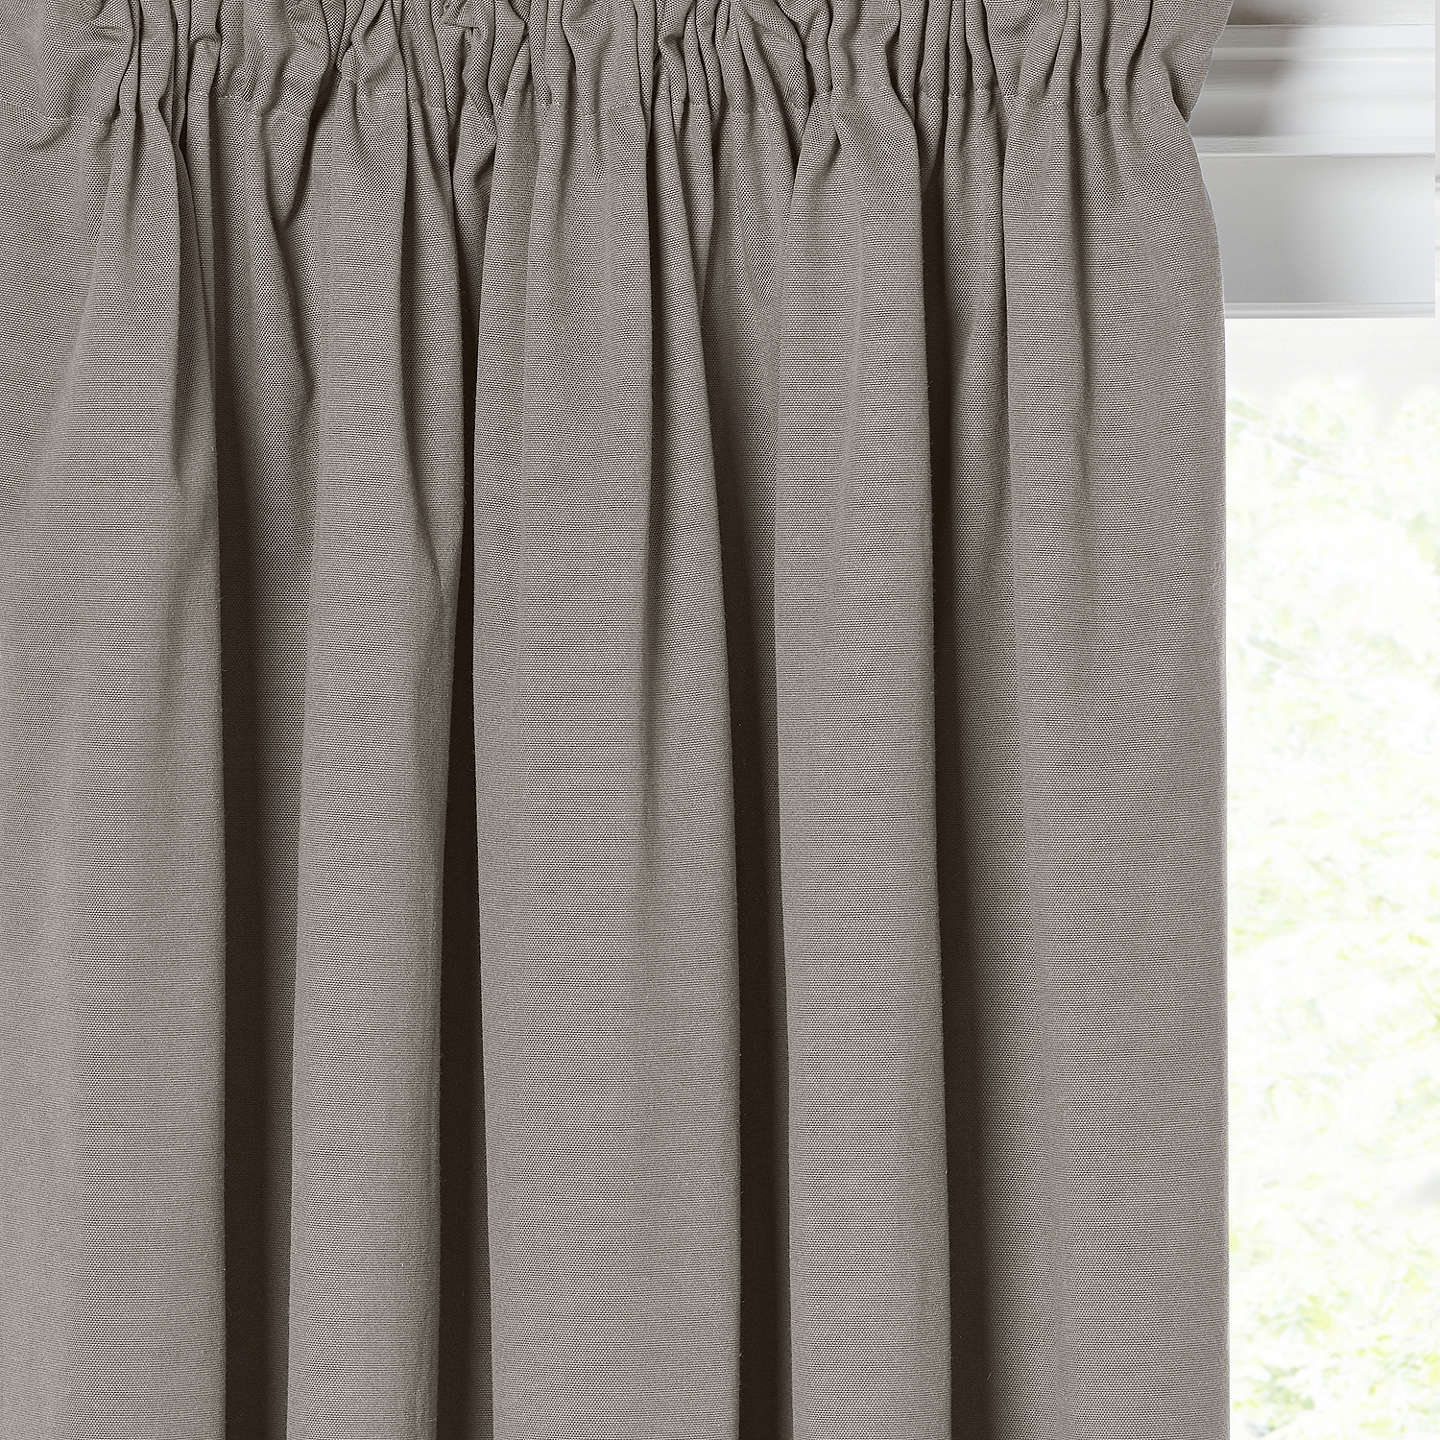 John Lewis Arlo Pair Lined Pencil Pleat Curtains, Storm by John Lewis